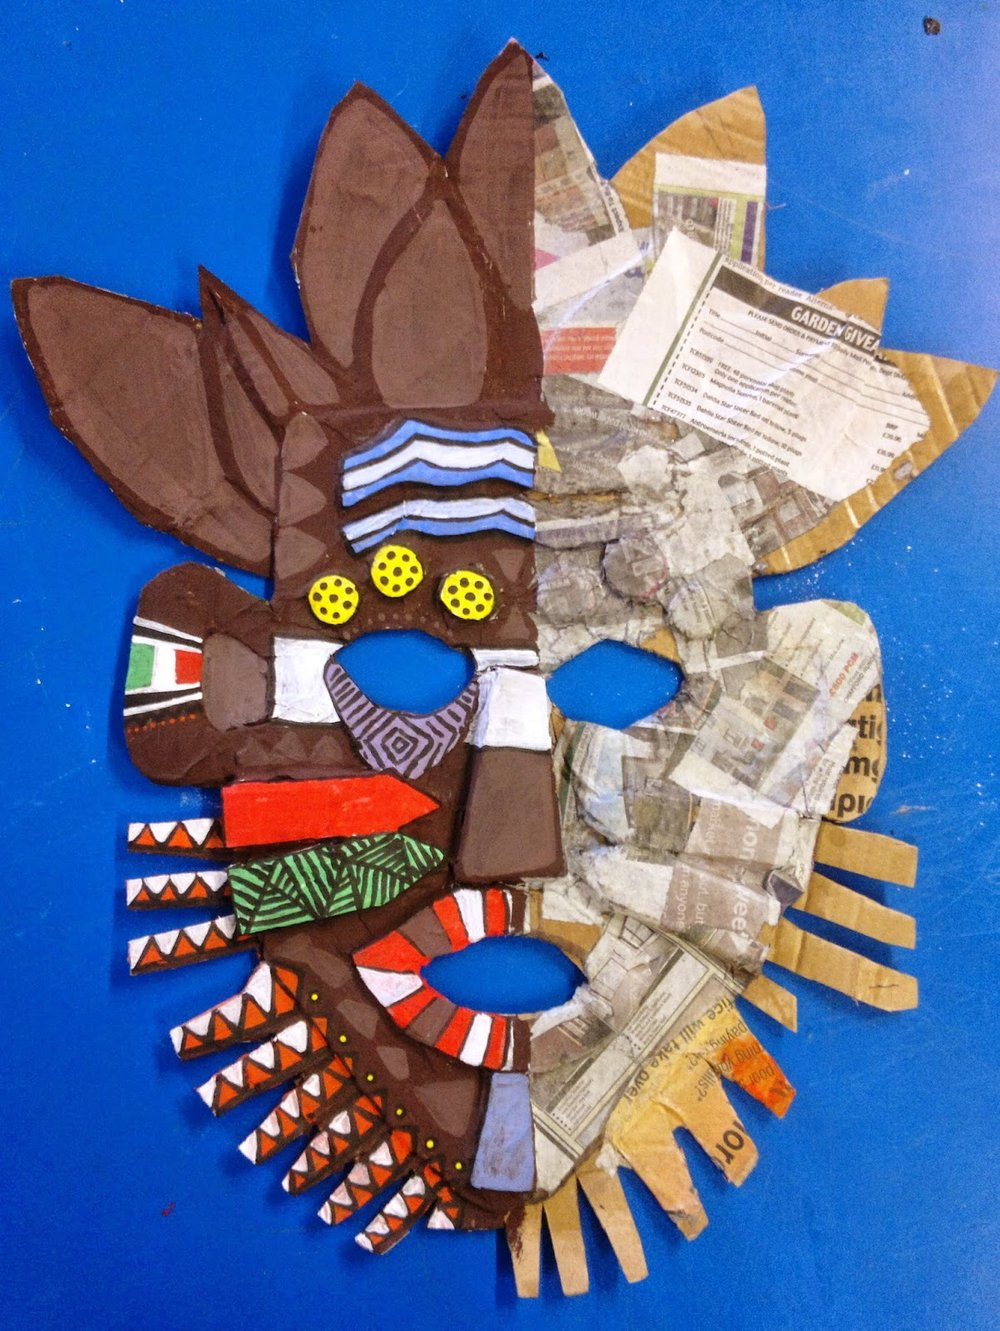 Almost done - This mask is also a relief sculpture.  It has been done with cardboard and paper mache.  The contrast between the earthy brown and the bright colors of the design give it a rich vibrant feel.